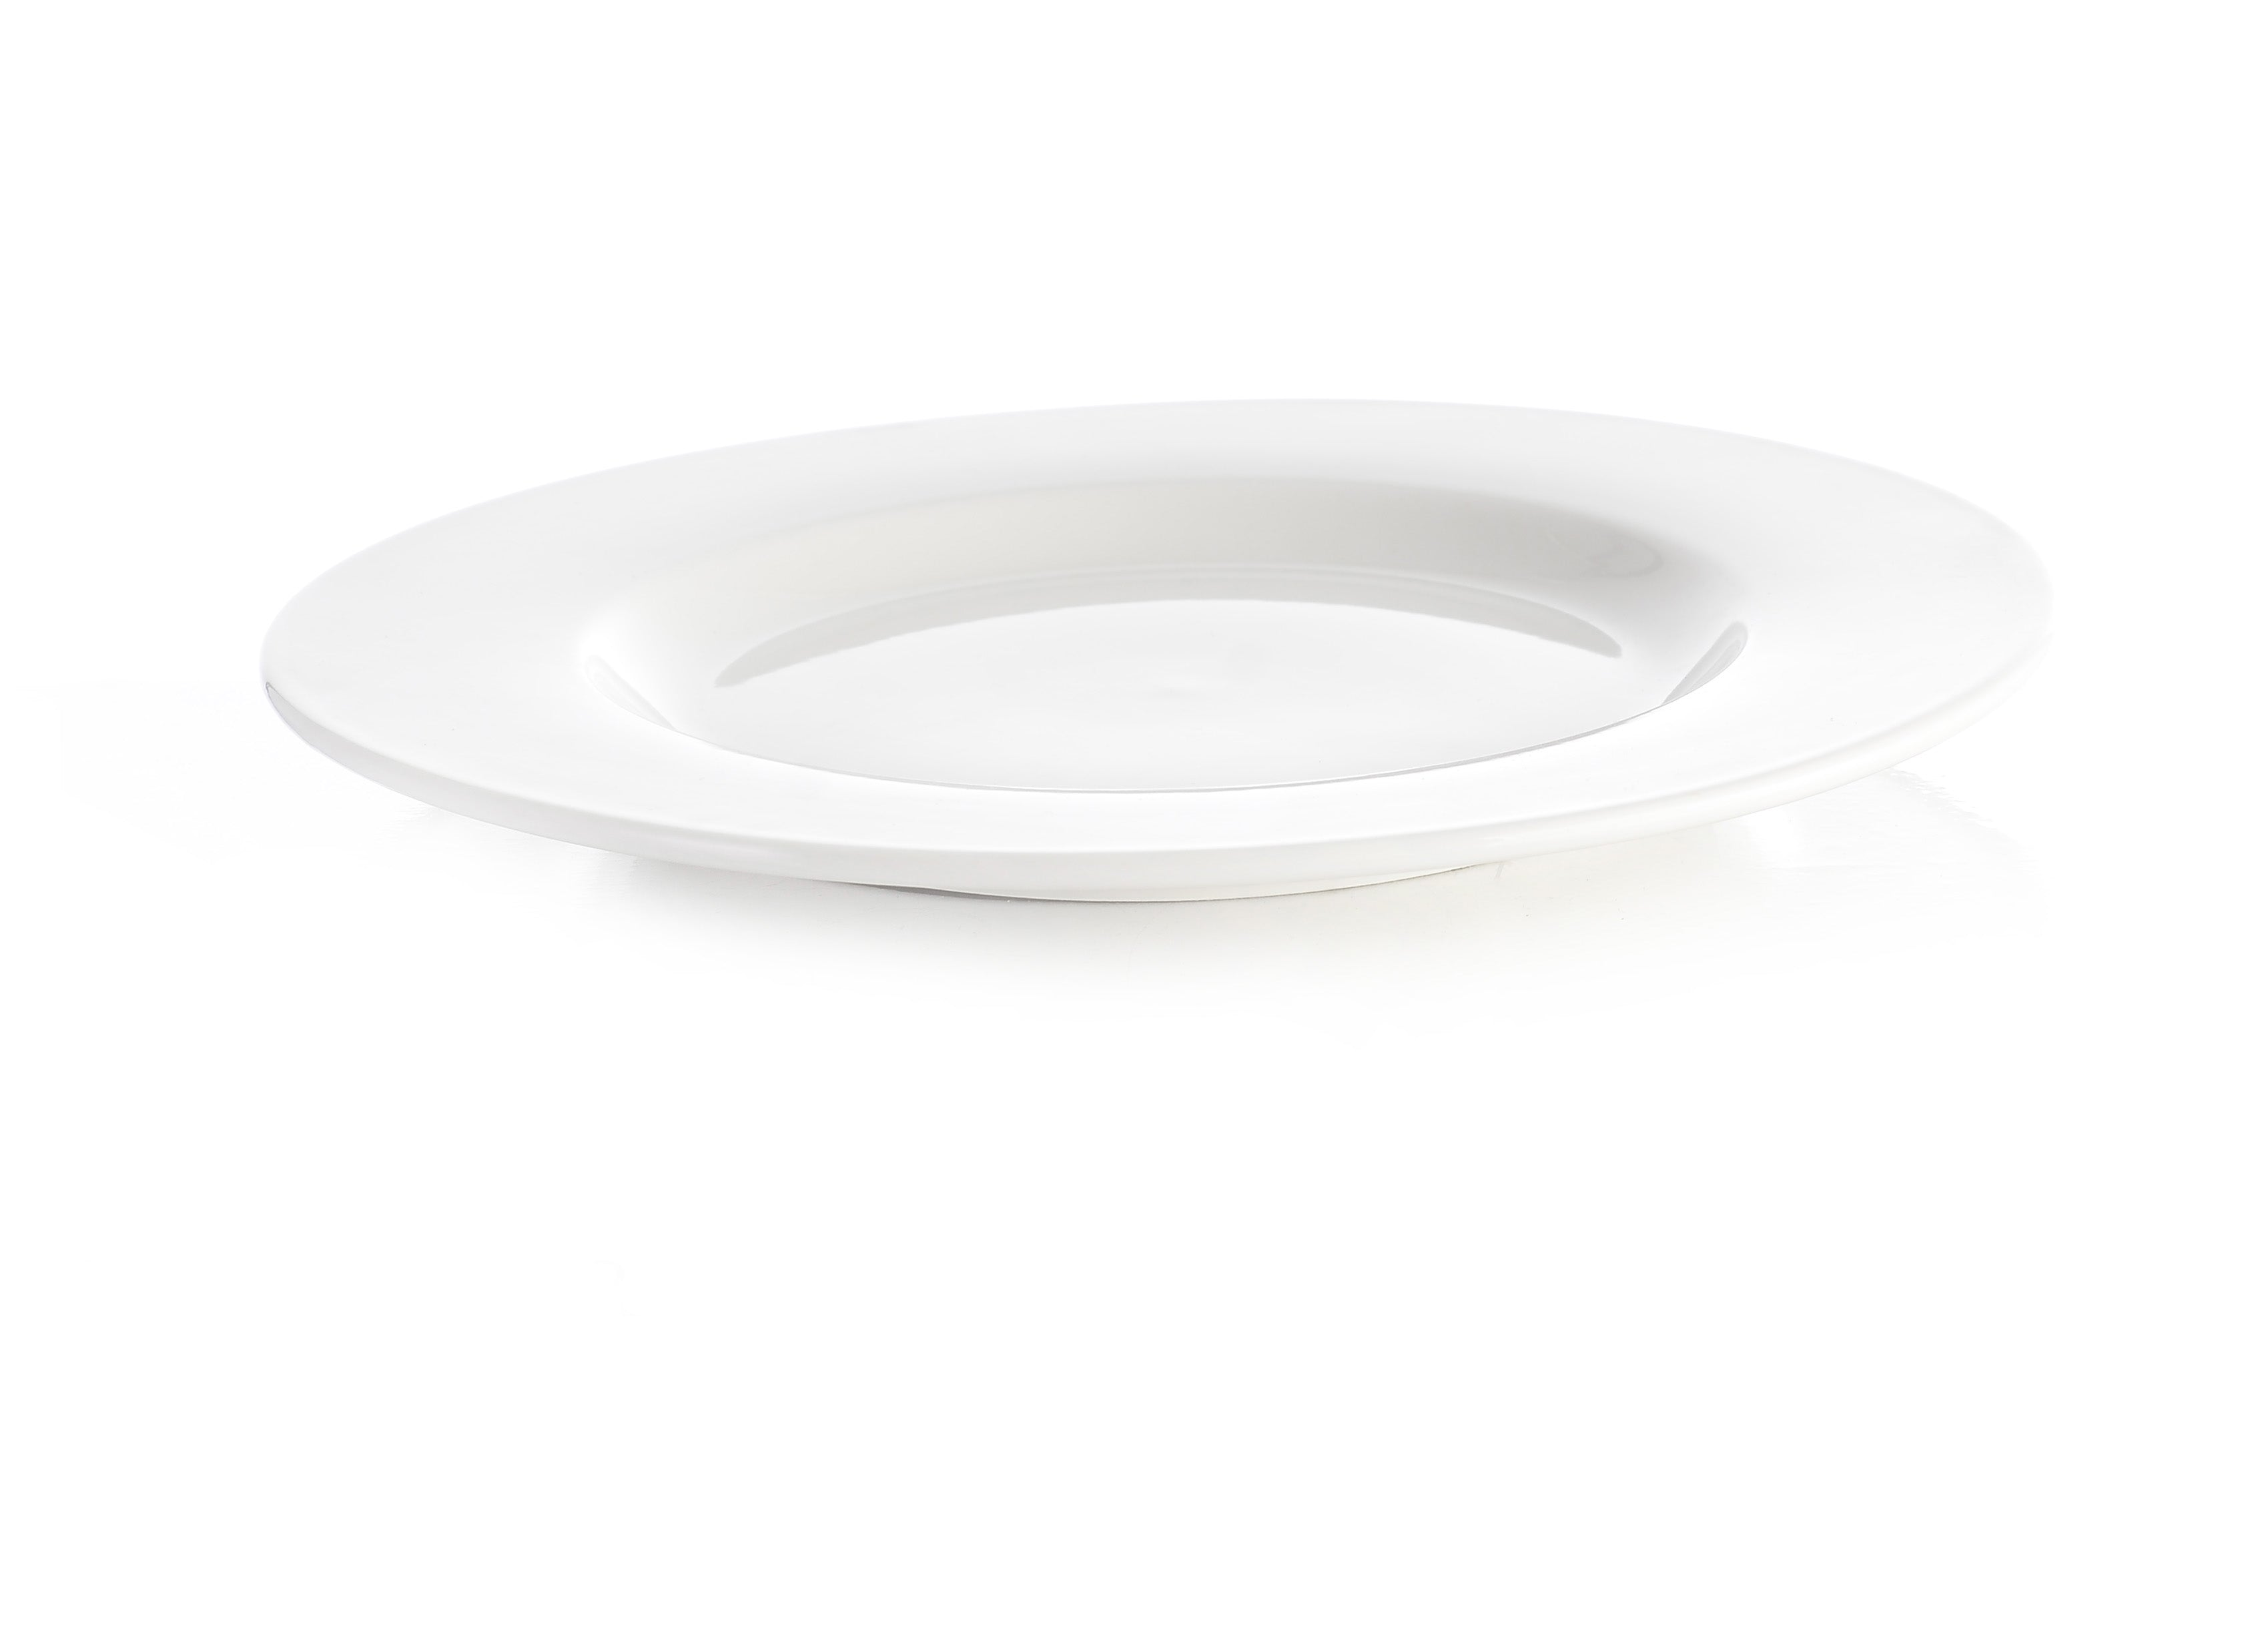 Professional Hotelware Wide Rimmed Plate - Pack of 6